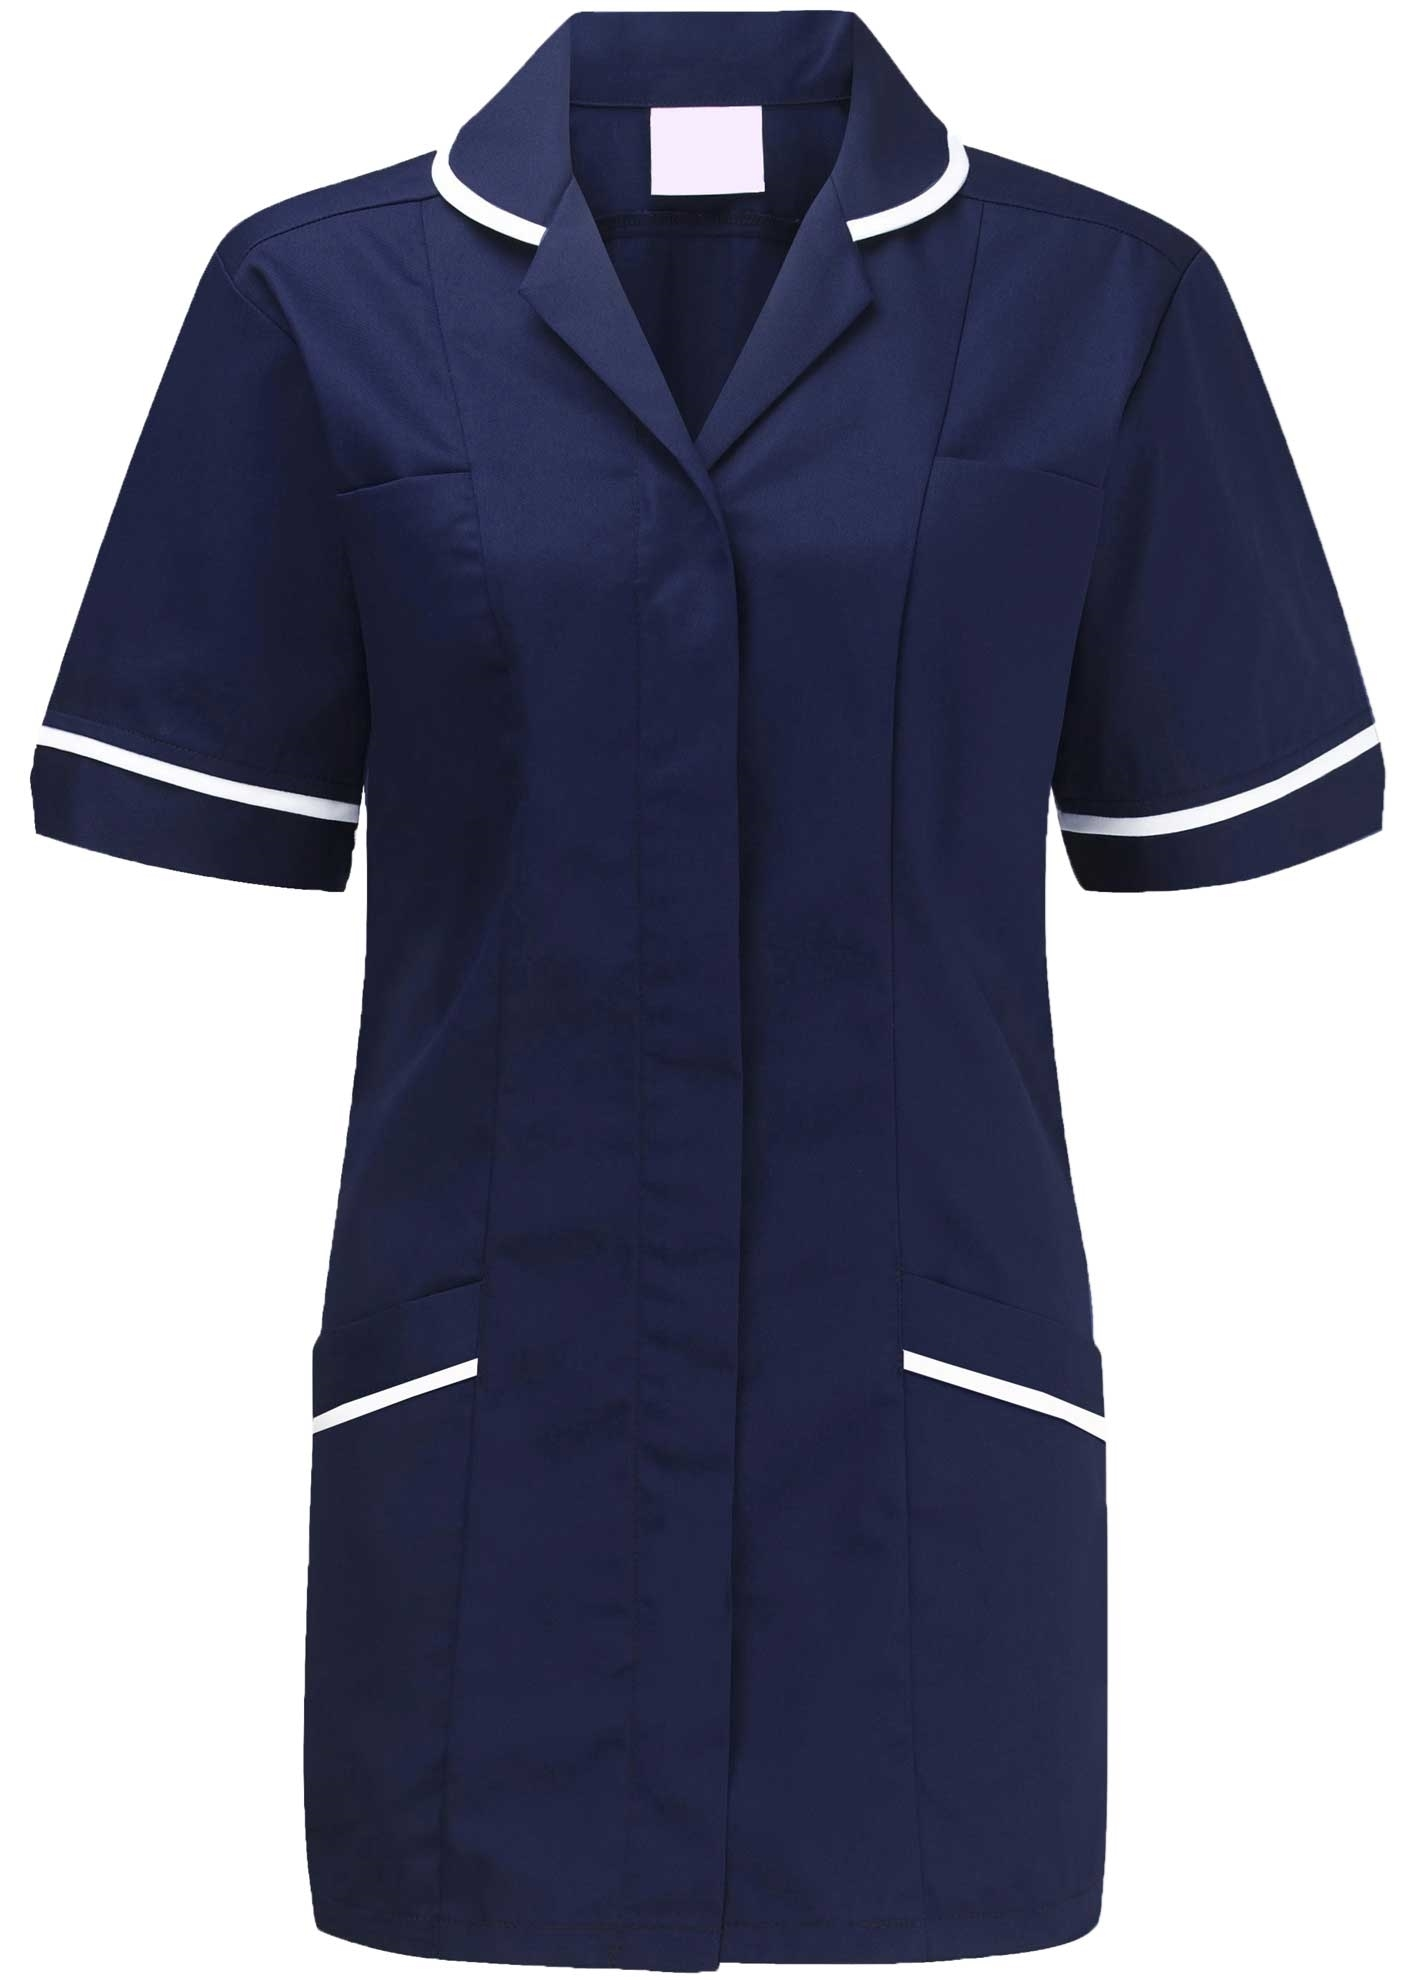 Picture of Flexi-Stretch Plain Tunic - Navy/White